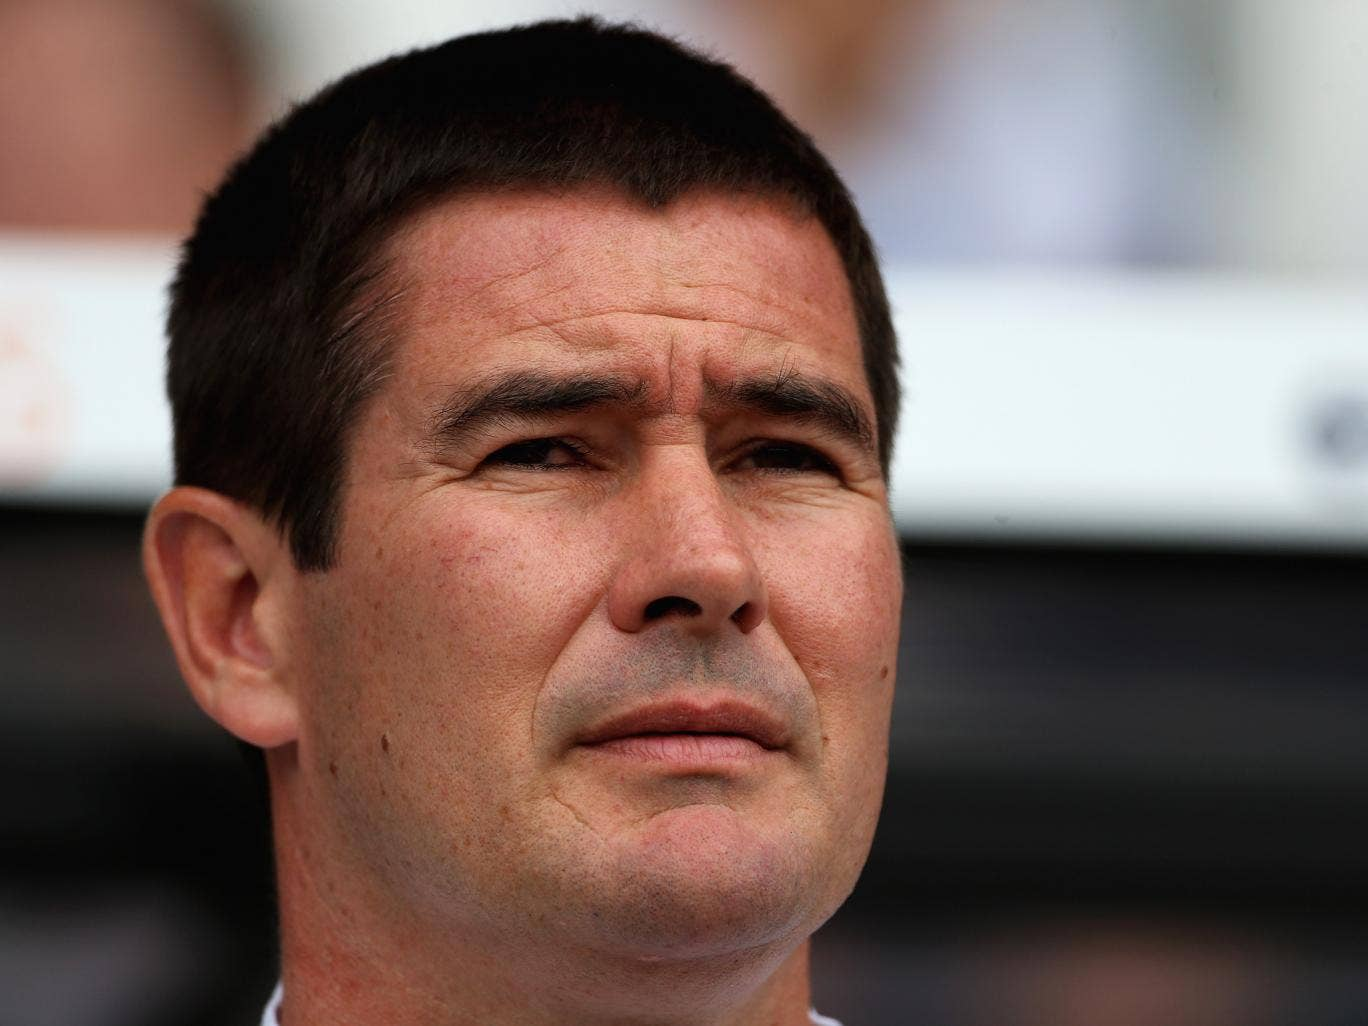 Nigel Clough has been announced as the new manager of Sheffield United